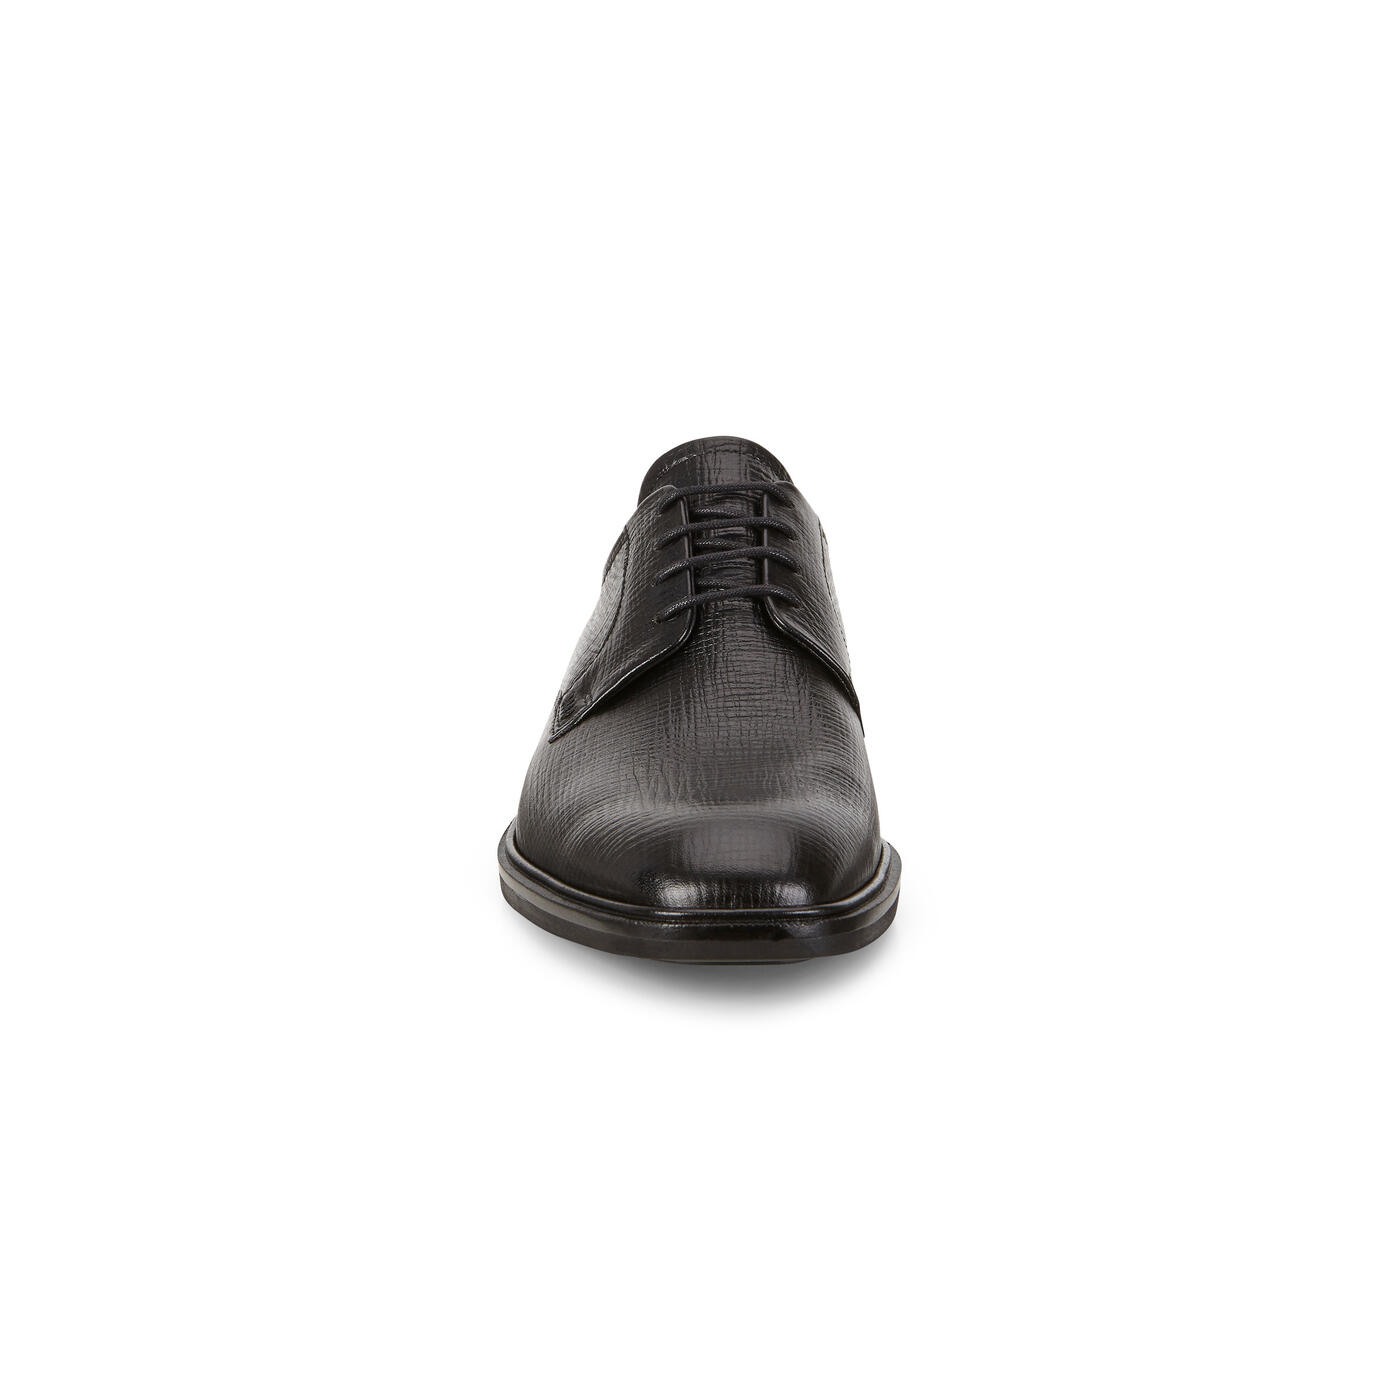 ECCO Illinois Plain Toe Tie